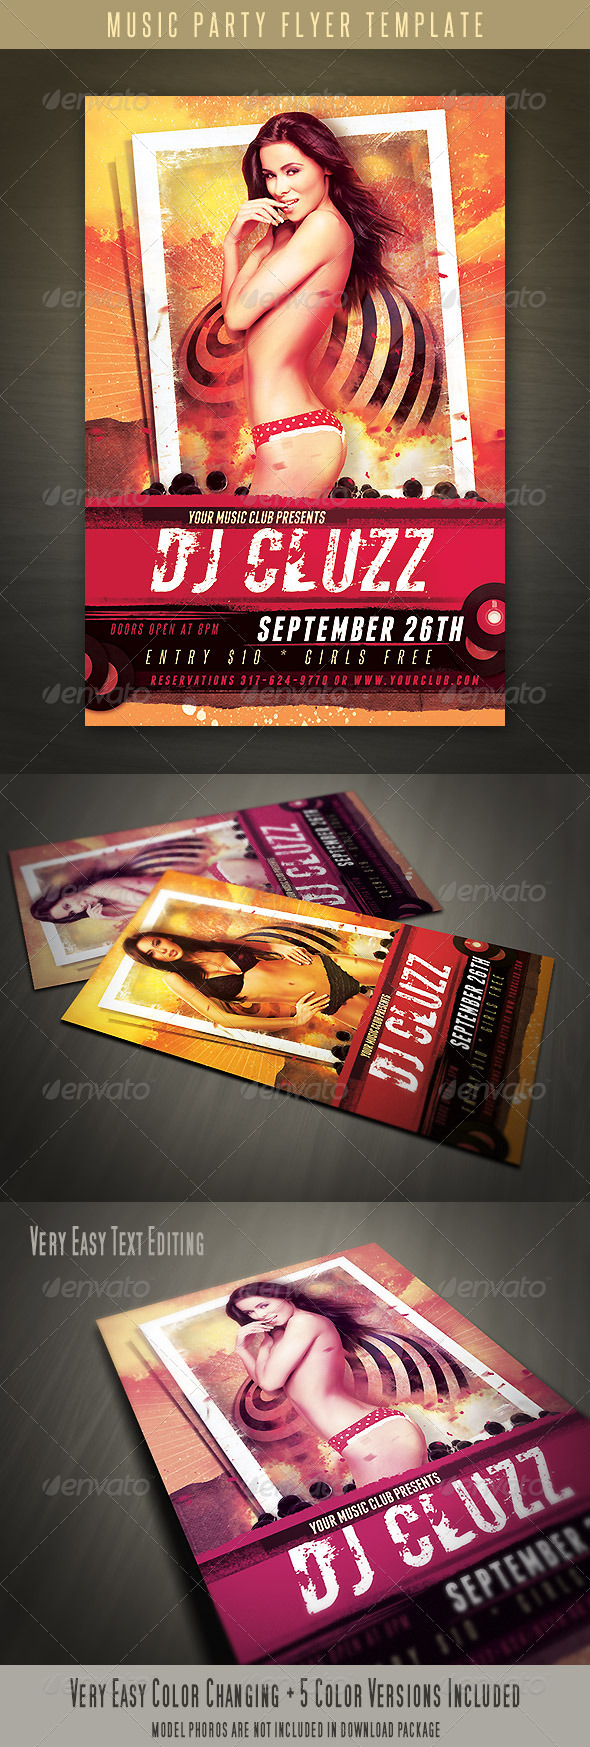 GraphicRiver Music Party Flyer 4406491